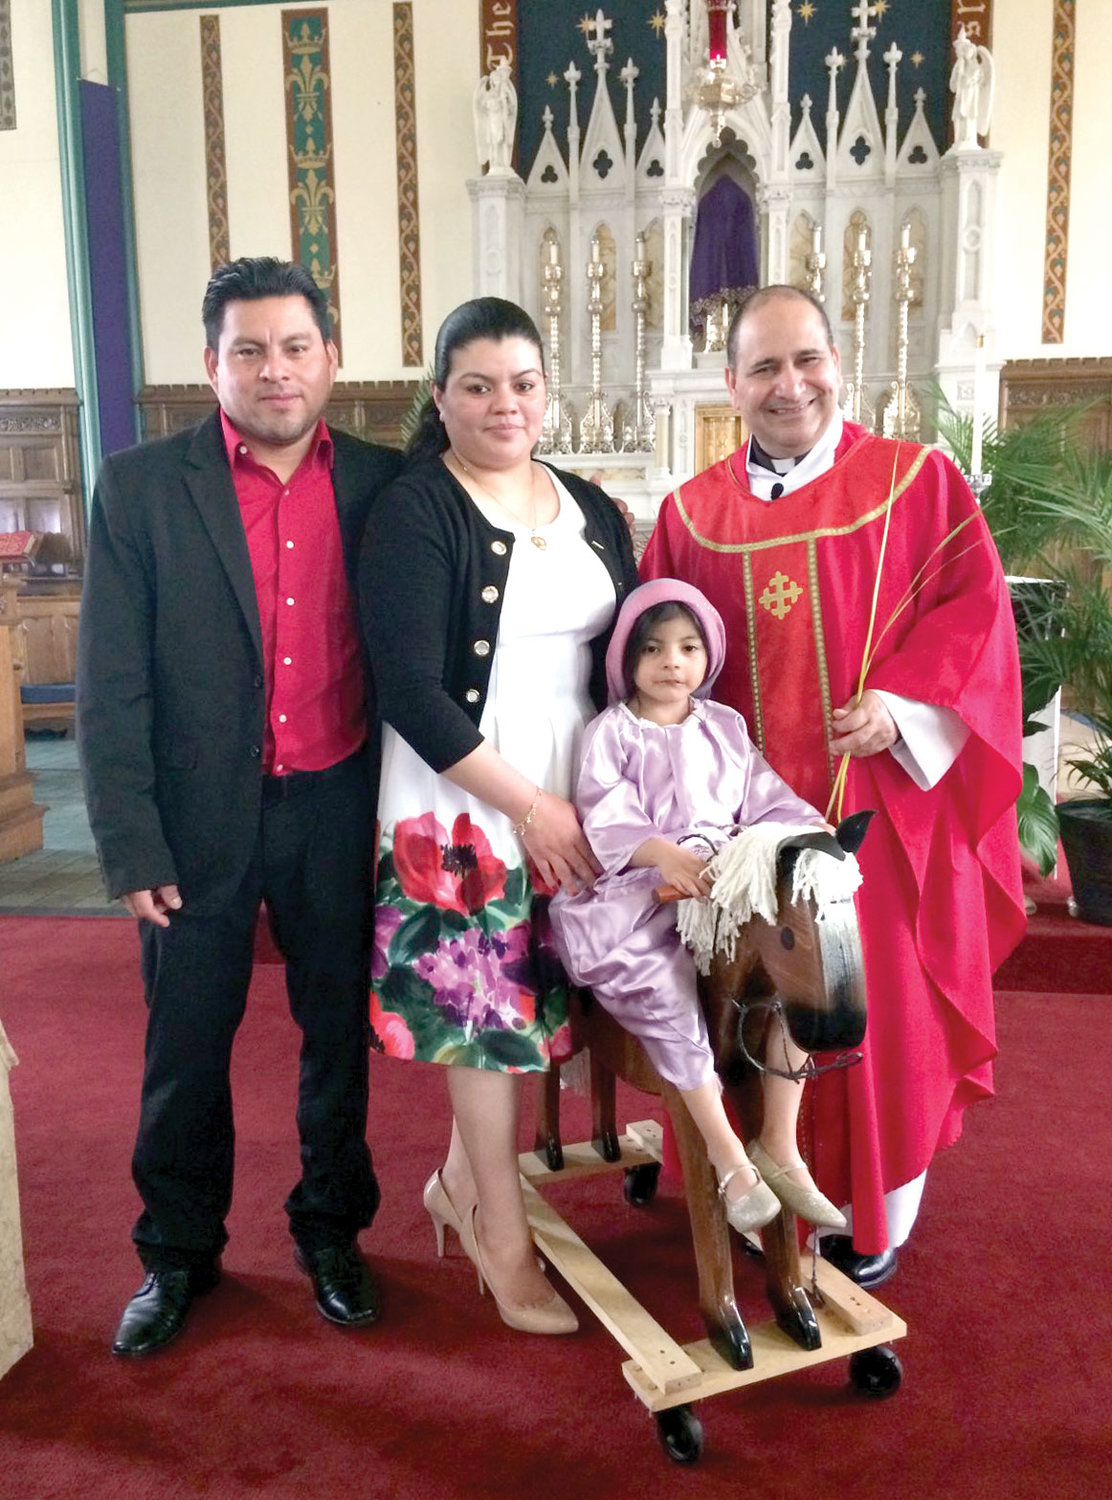 IN CHURCH—Father Pichardo greets parishioners Freddy and Veronica Baide and their daughter Katie after a Mass last December at St. Mary-St. Peter parish in Kingston.